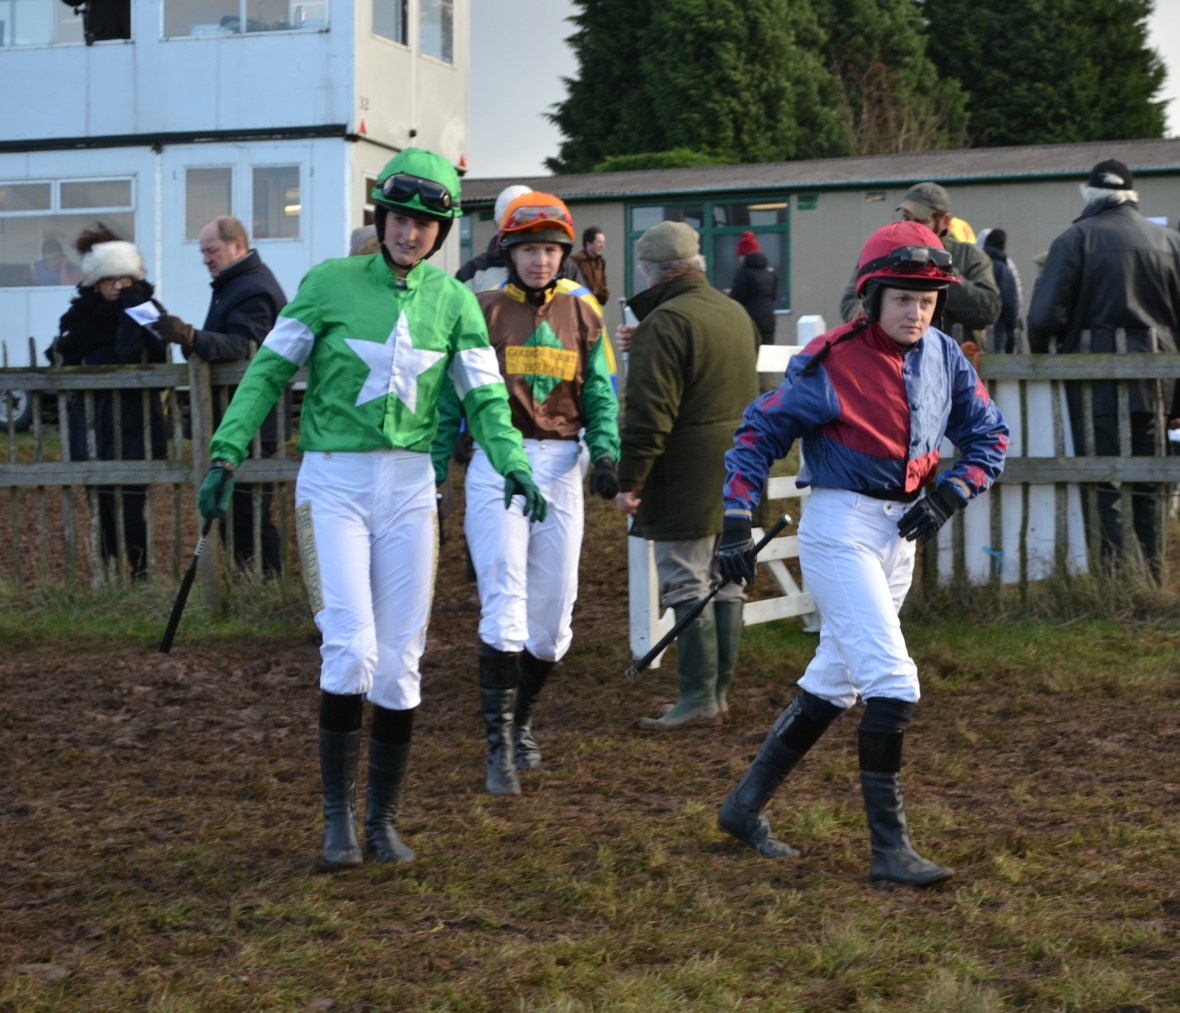 Hanna Jones (green silks with white star), Emma Todd and Charlotte Hawker